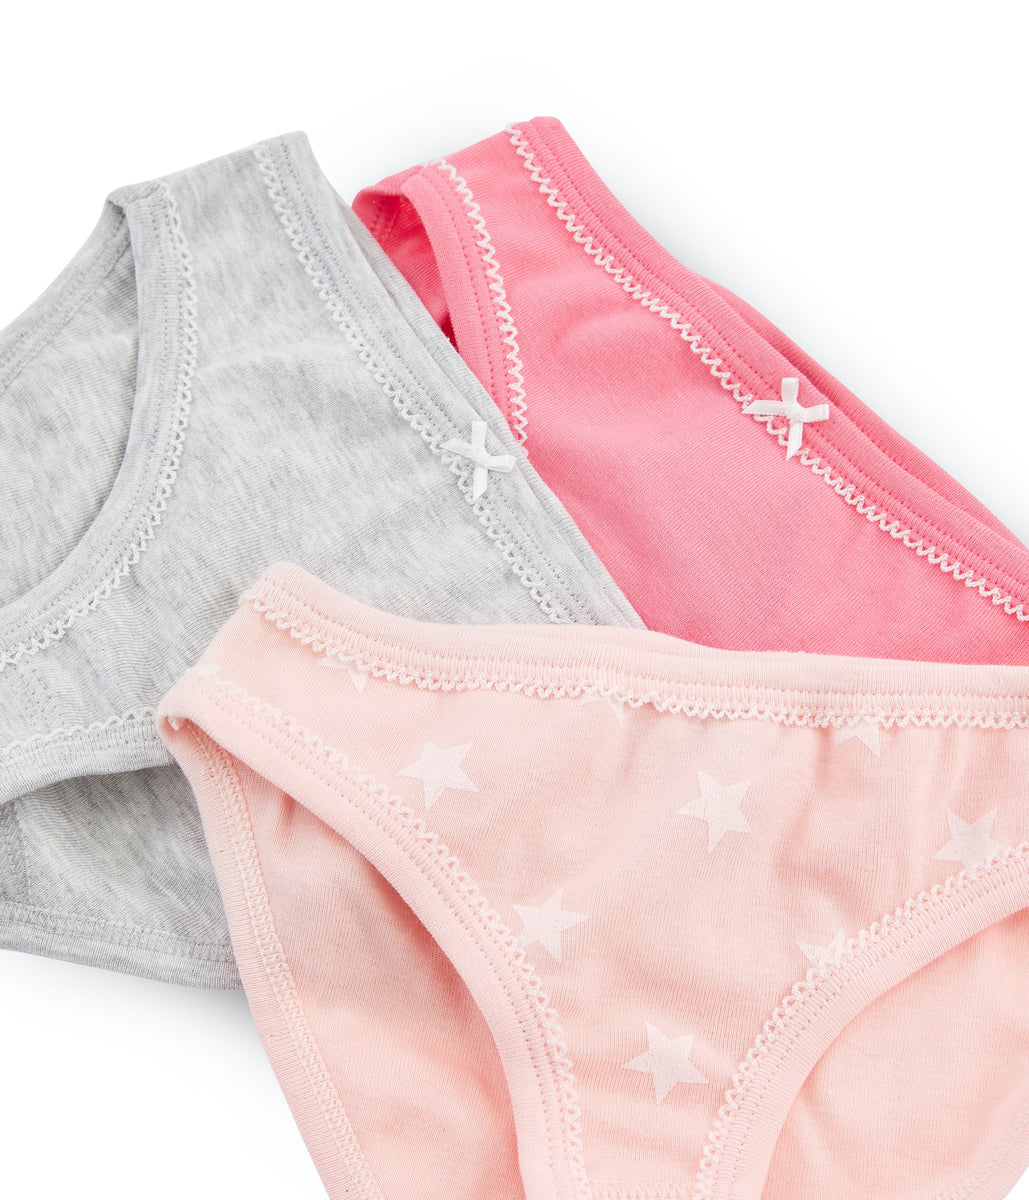 3pk Knickers | Pink/Pale Pink/Grey